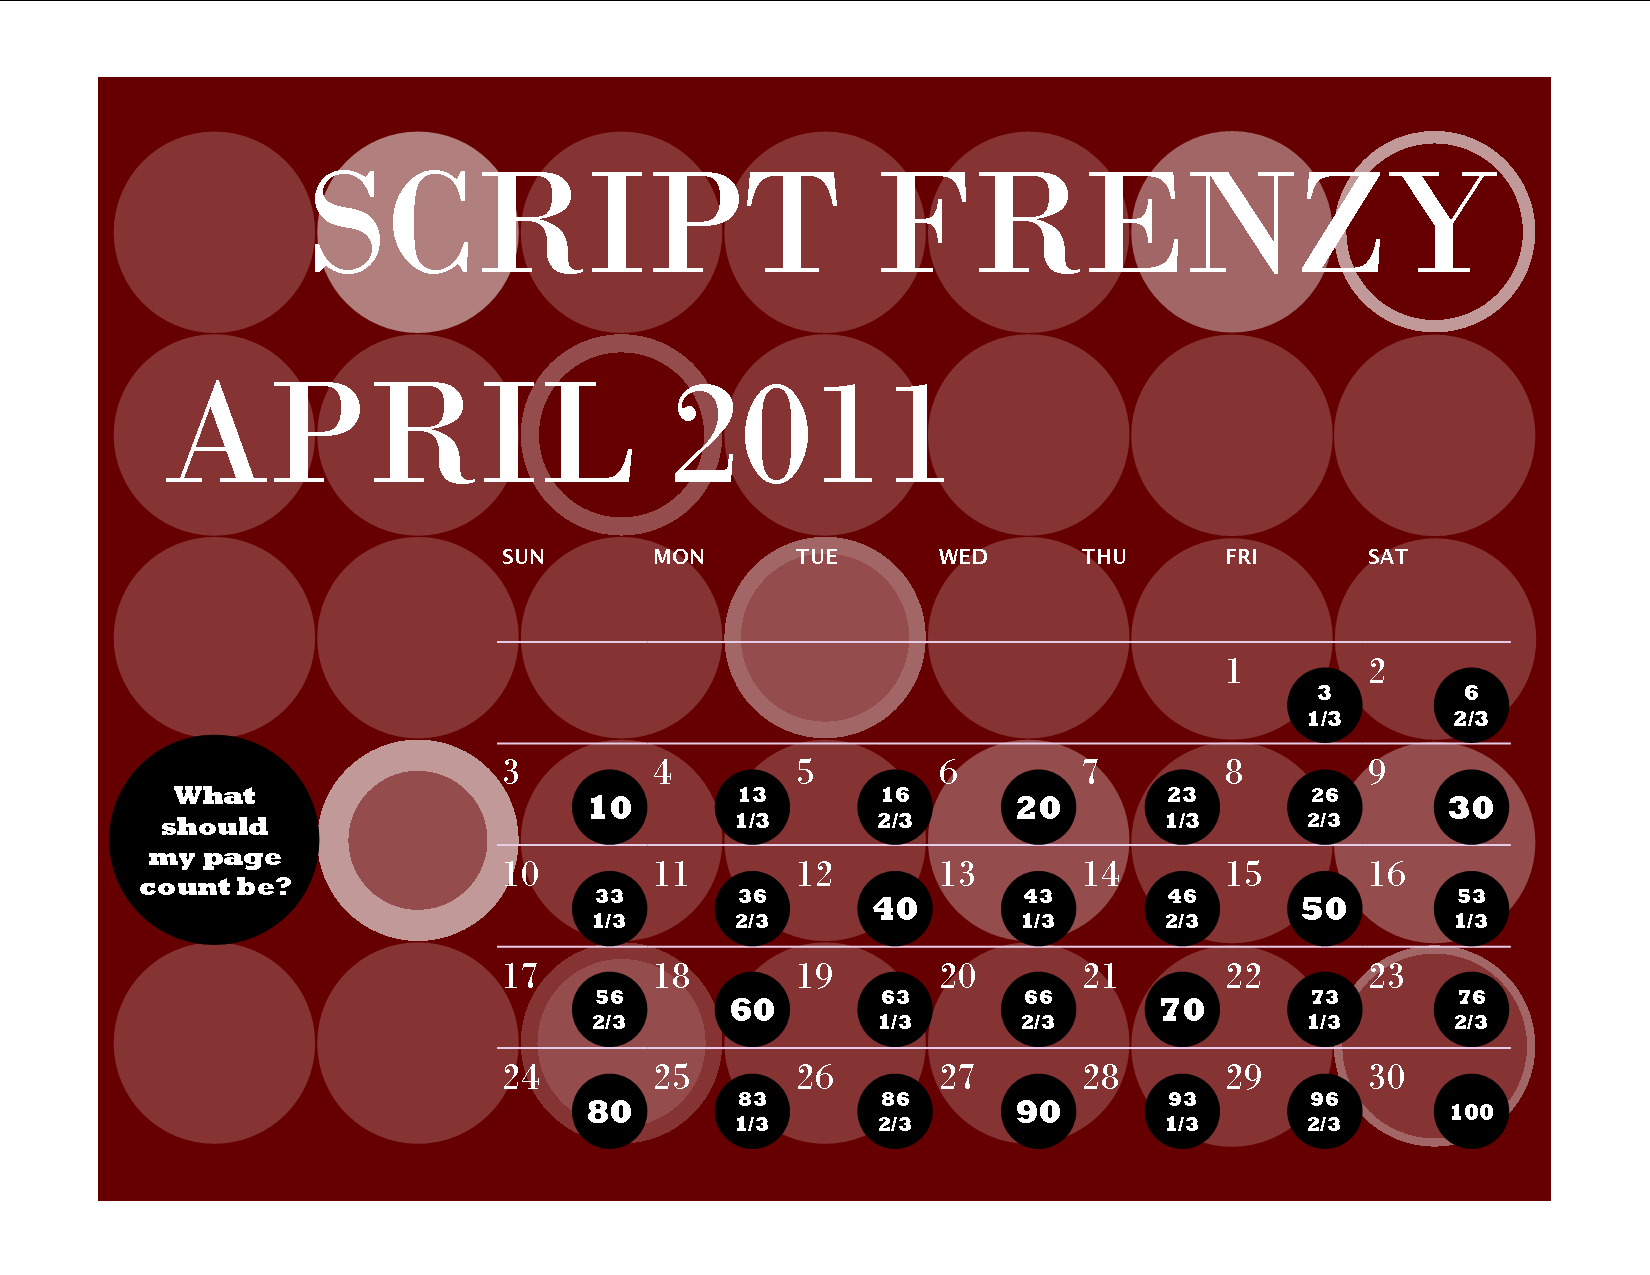 How to Participate in Script Frenzy pictures